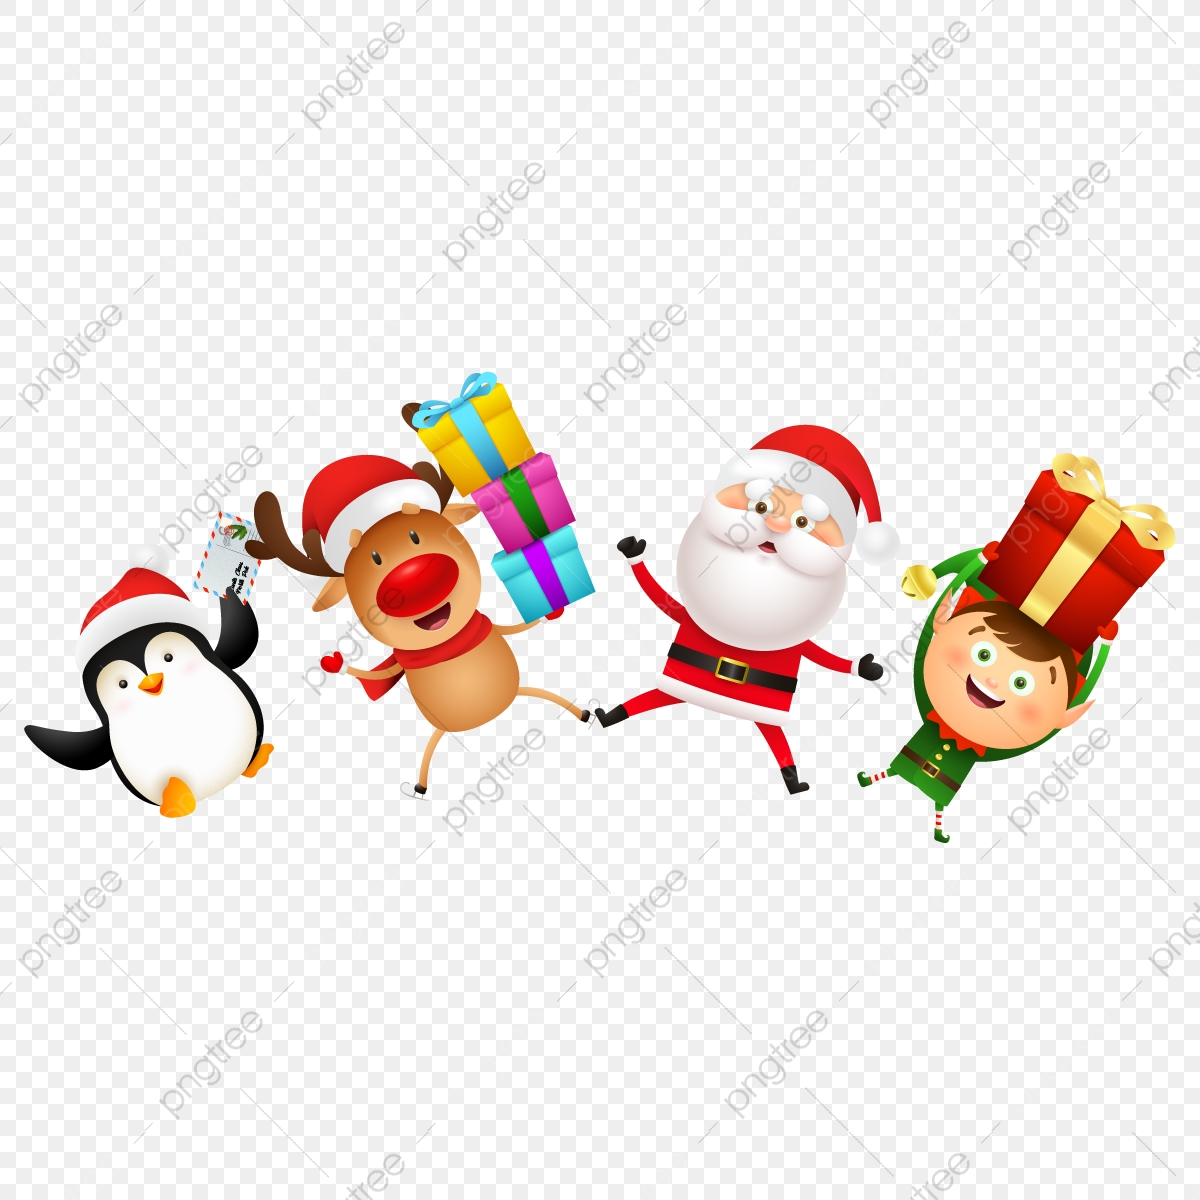 Christmas Characters Celebrations Png